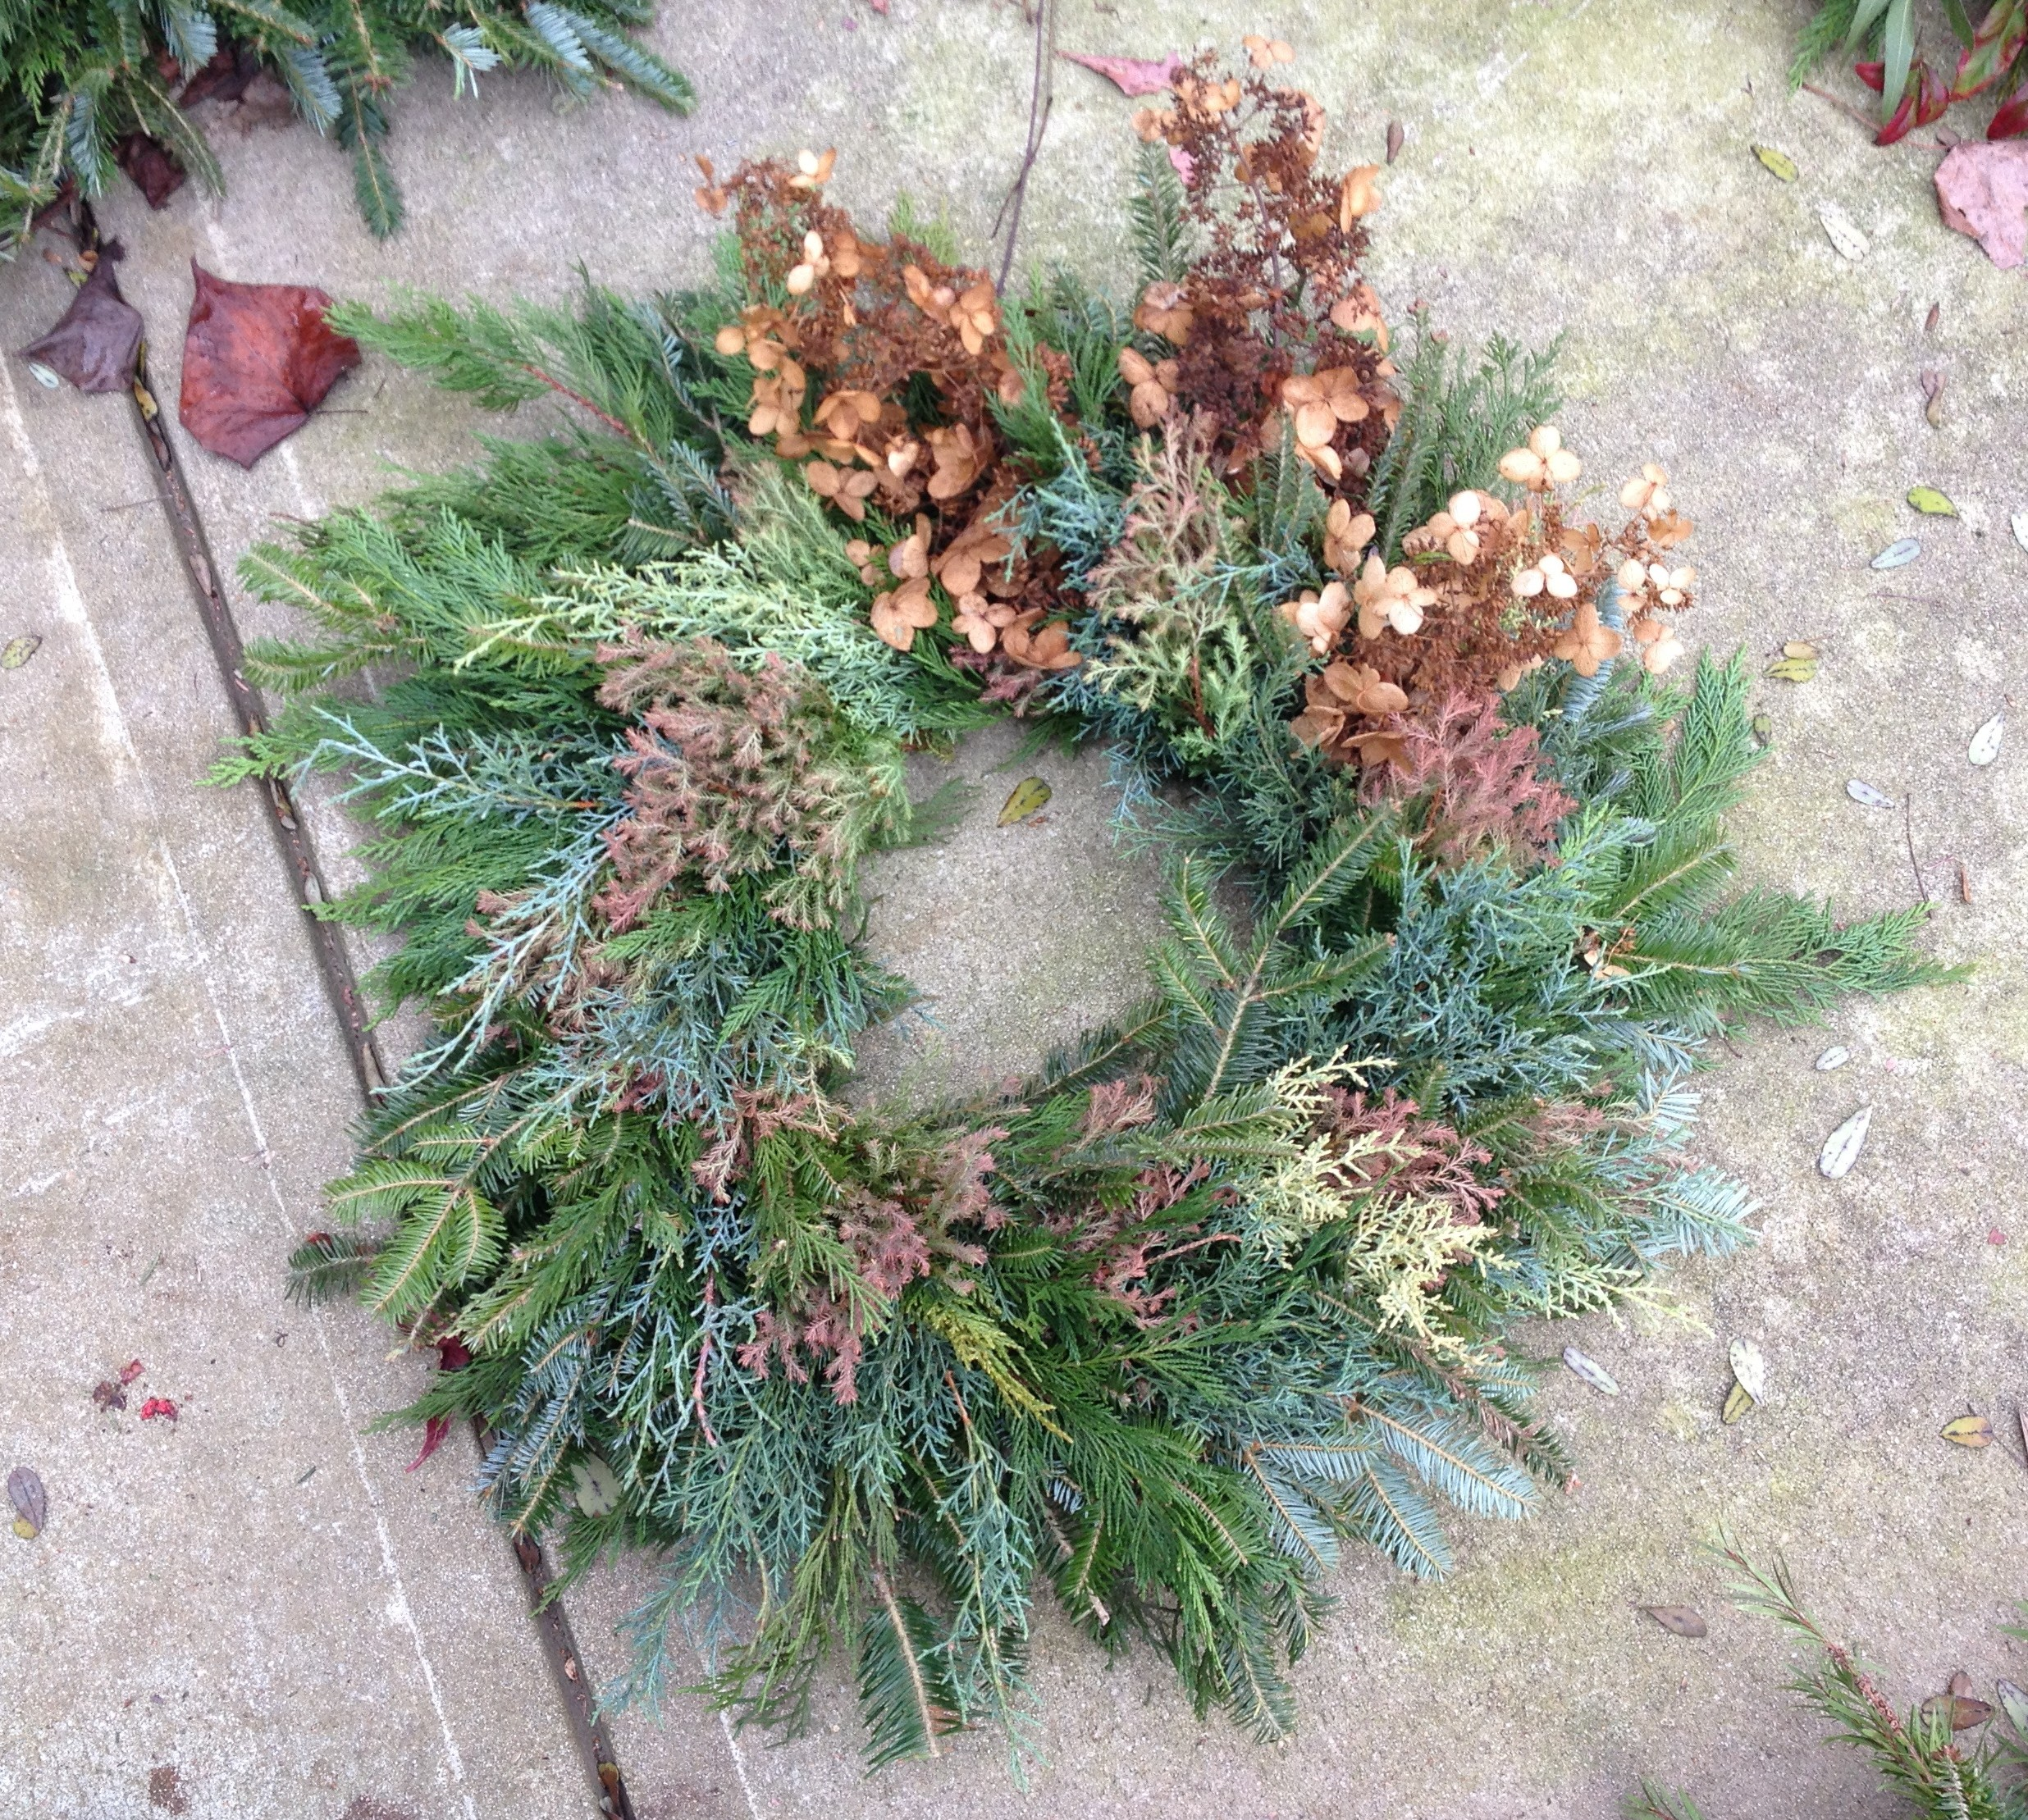 This wreath features dried hydrangea and a variety of conifers, others have bright berries, willow twigs, and pine cones.